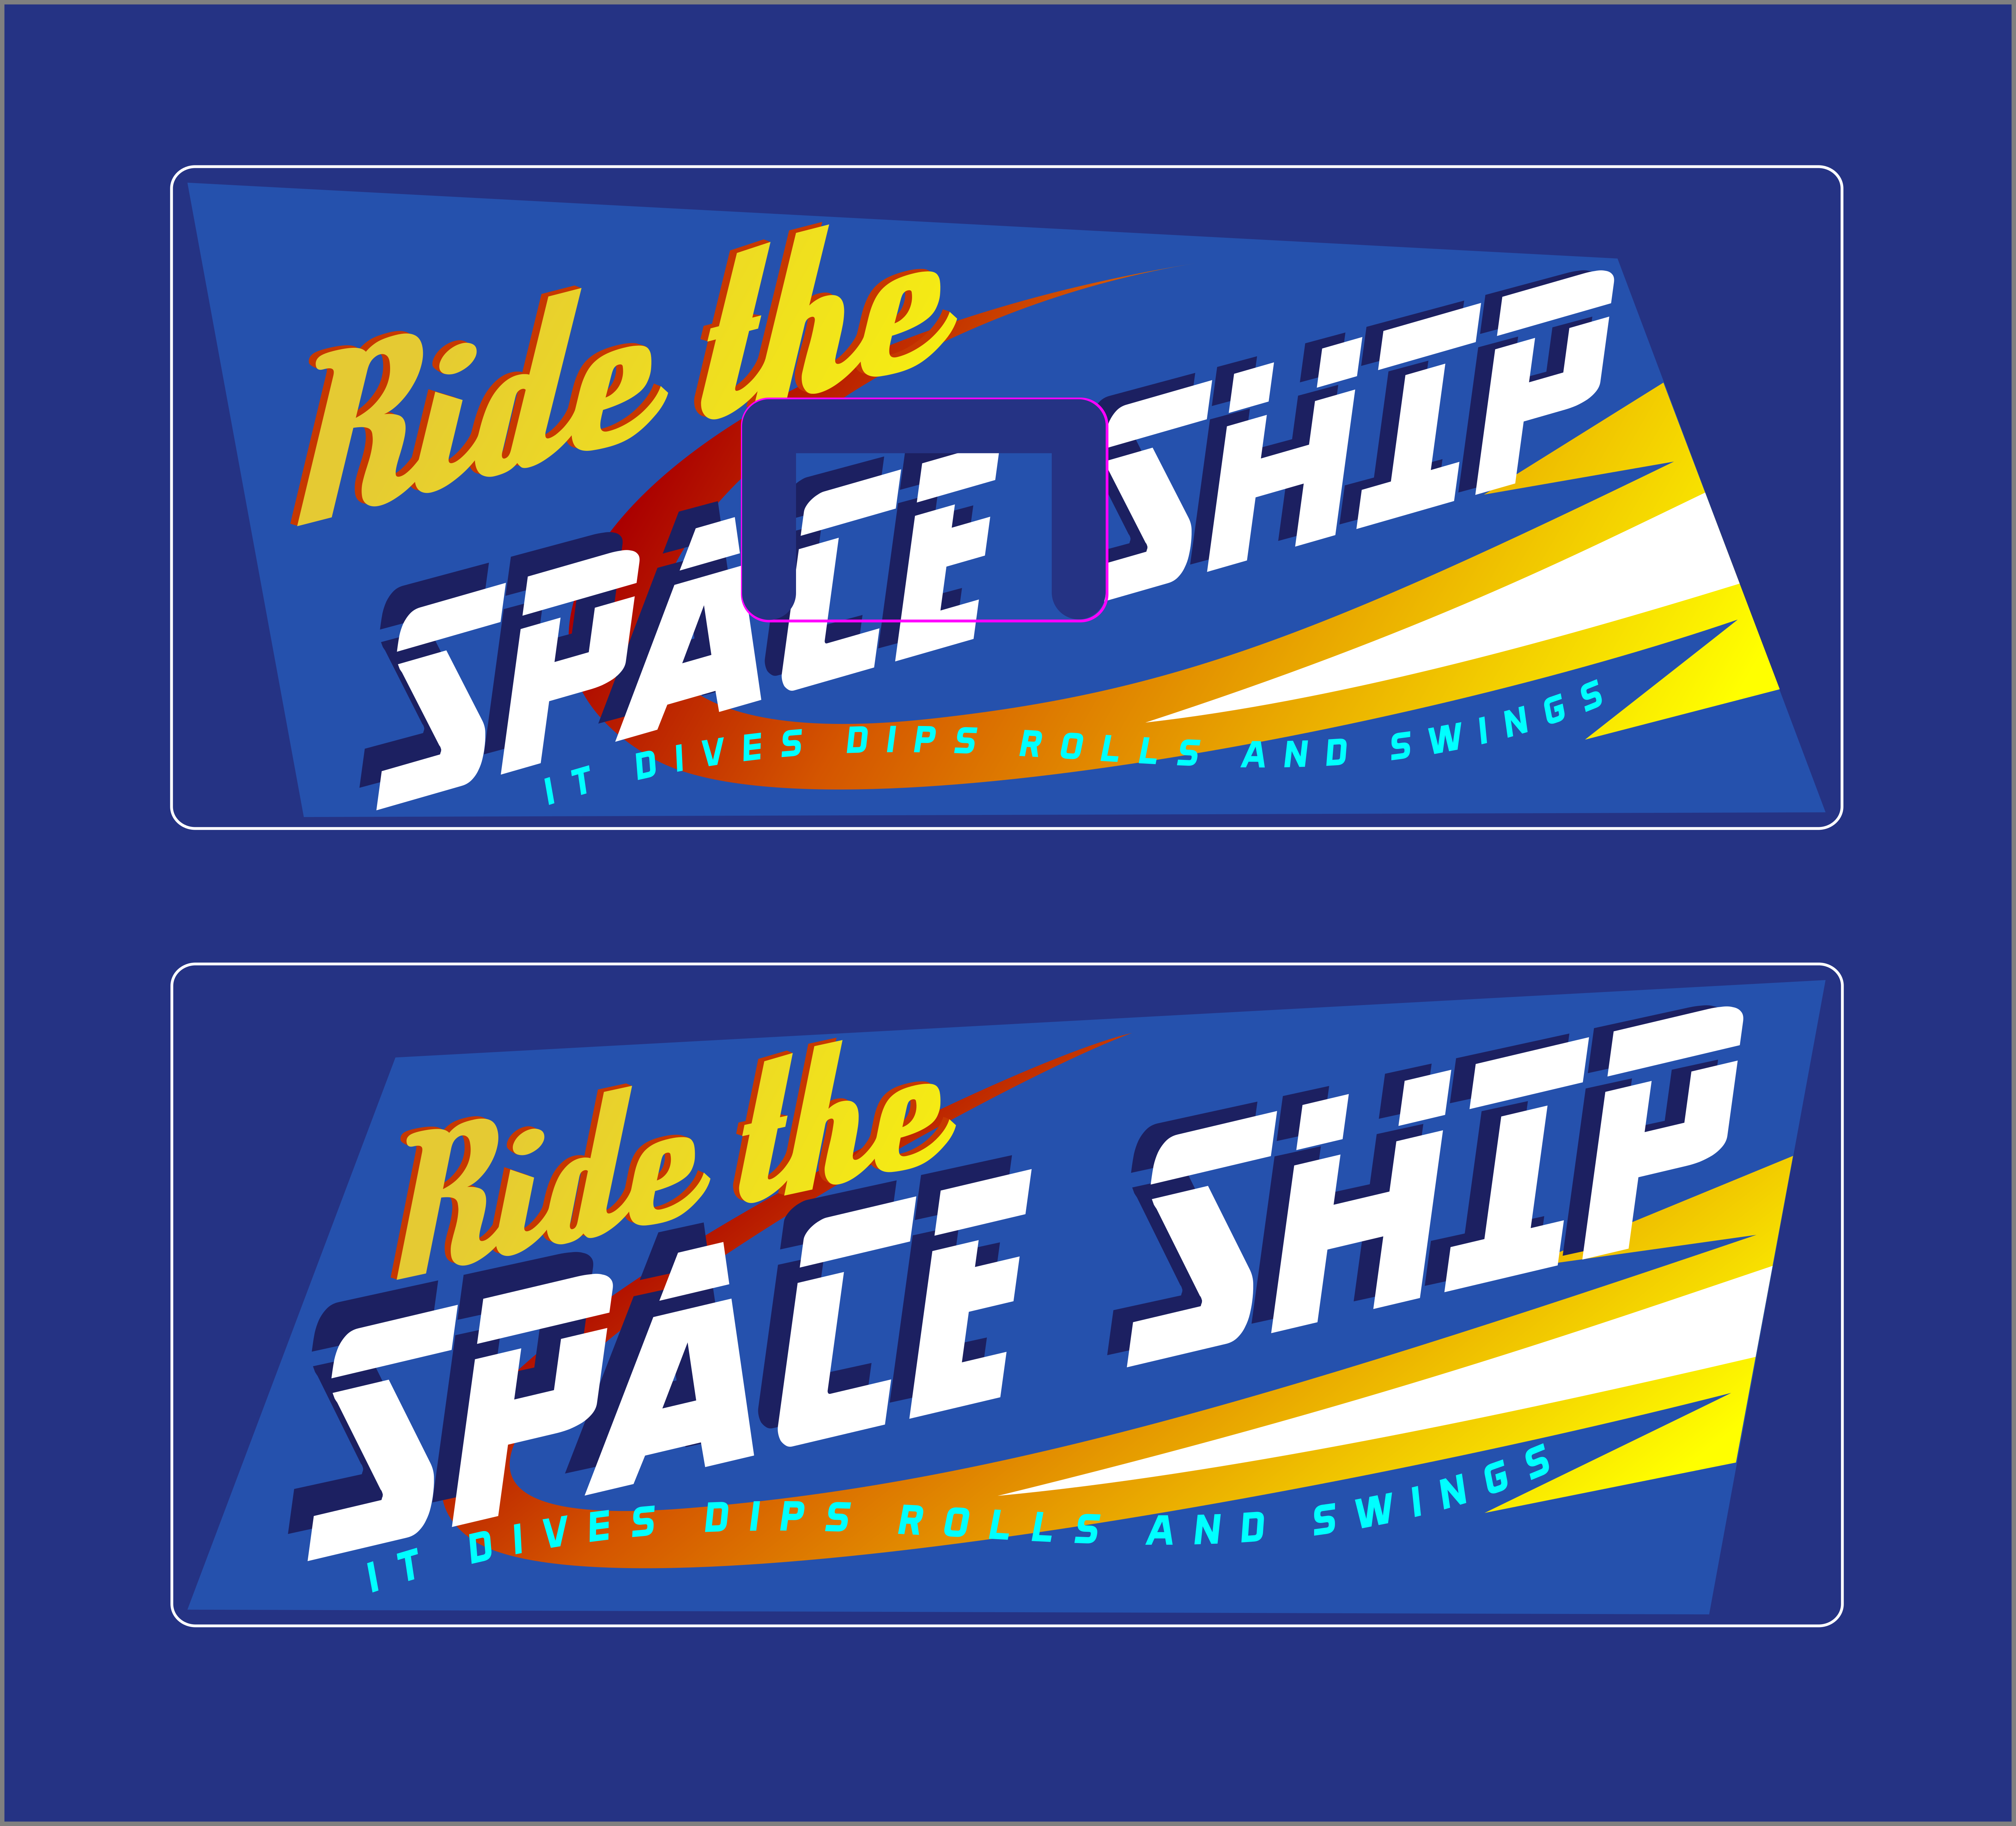 Kiddie Ride Graphics and Lettering.